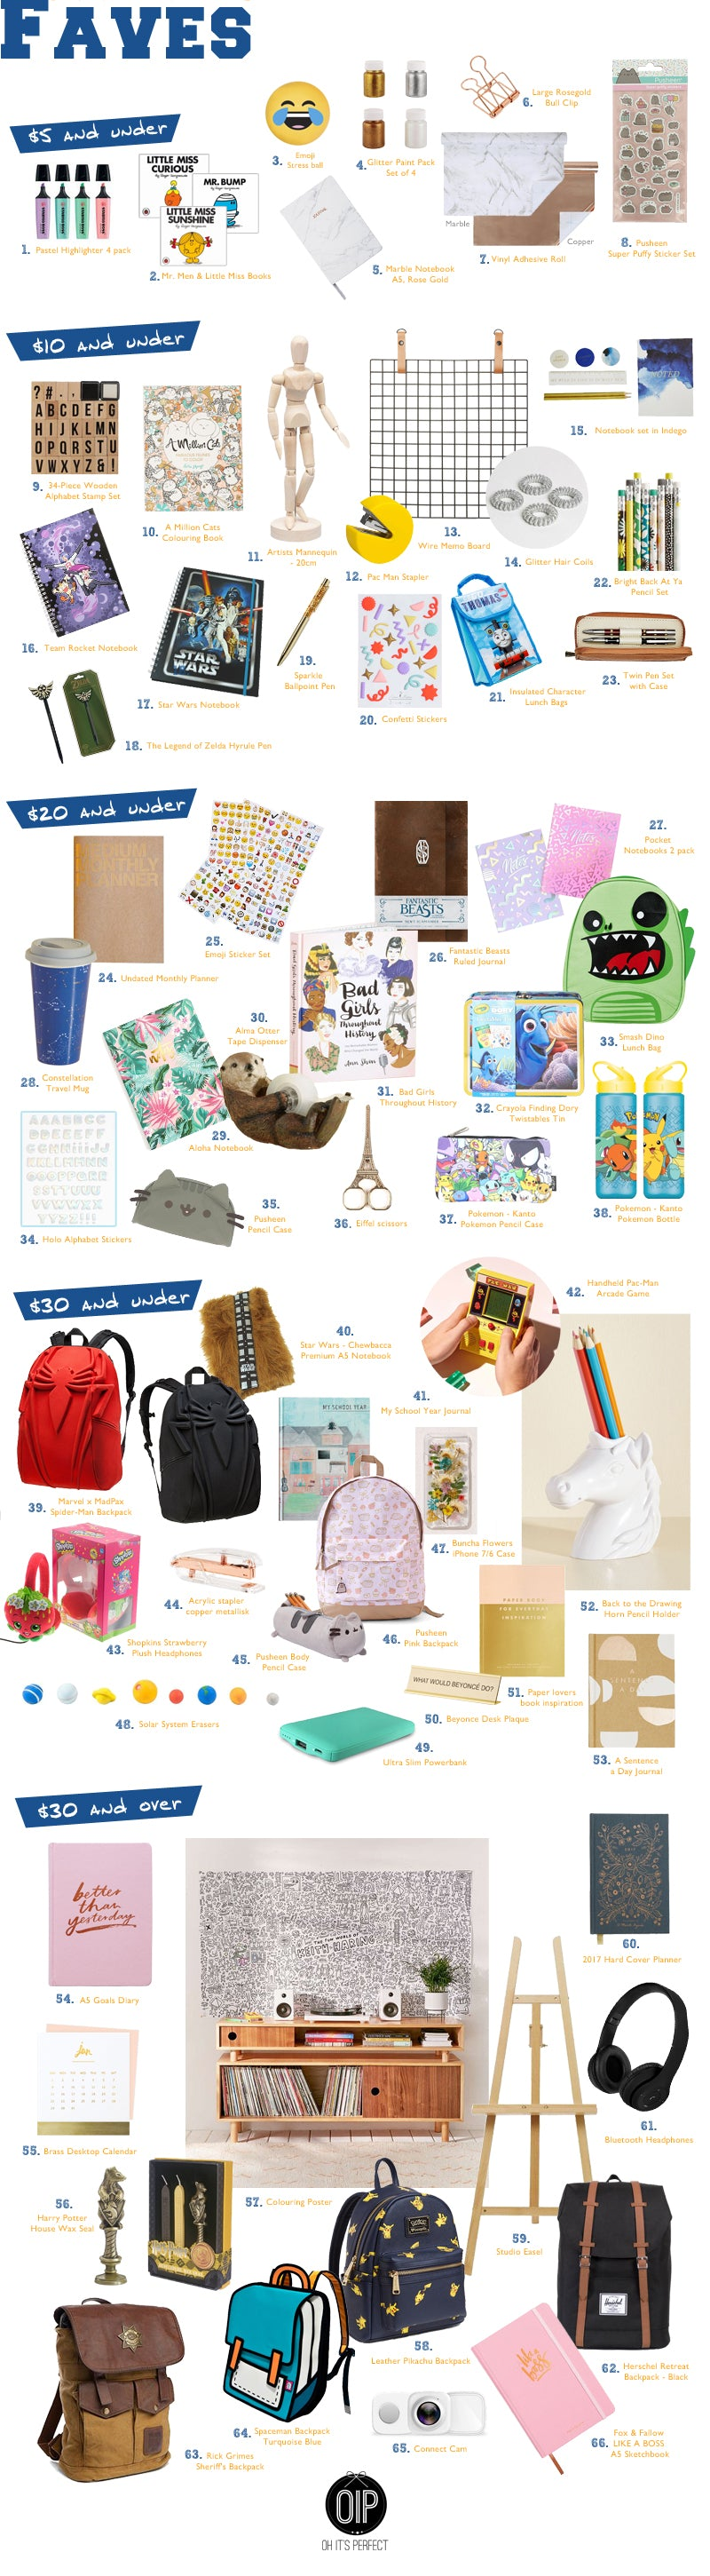 Shop guide Back to School Faves (2)